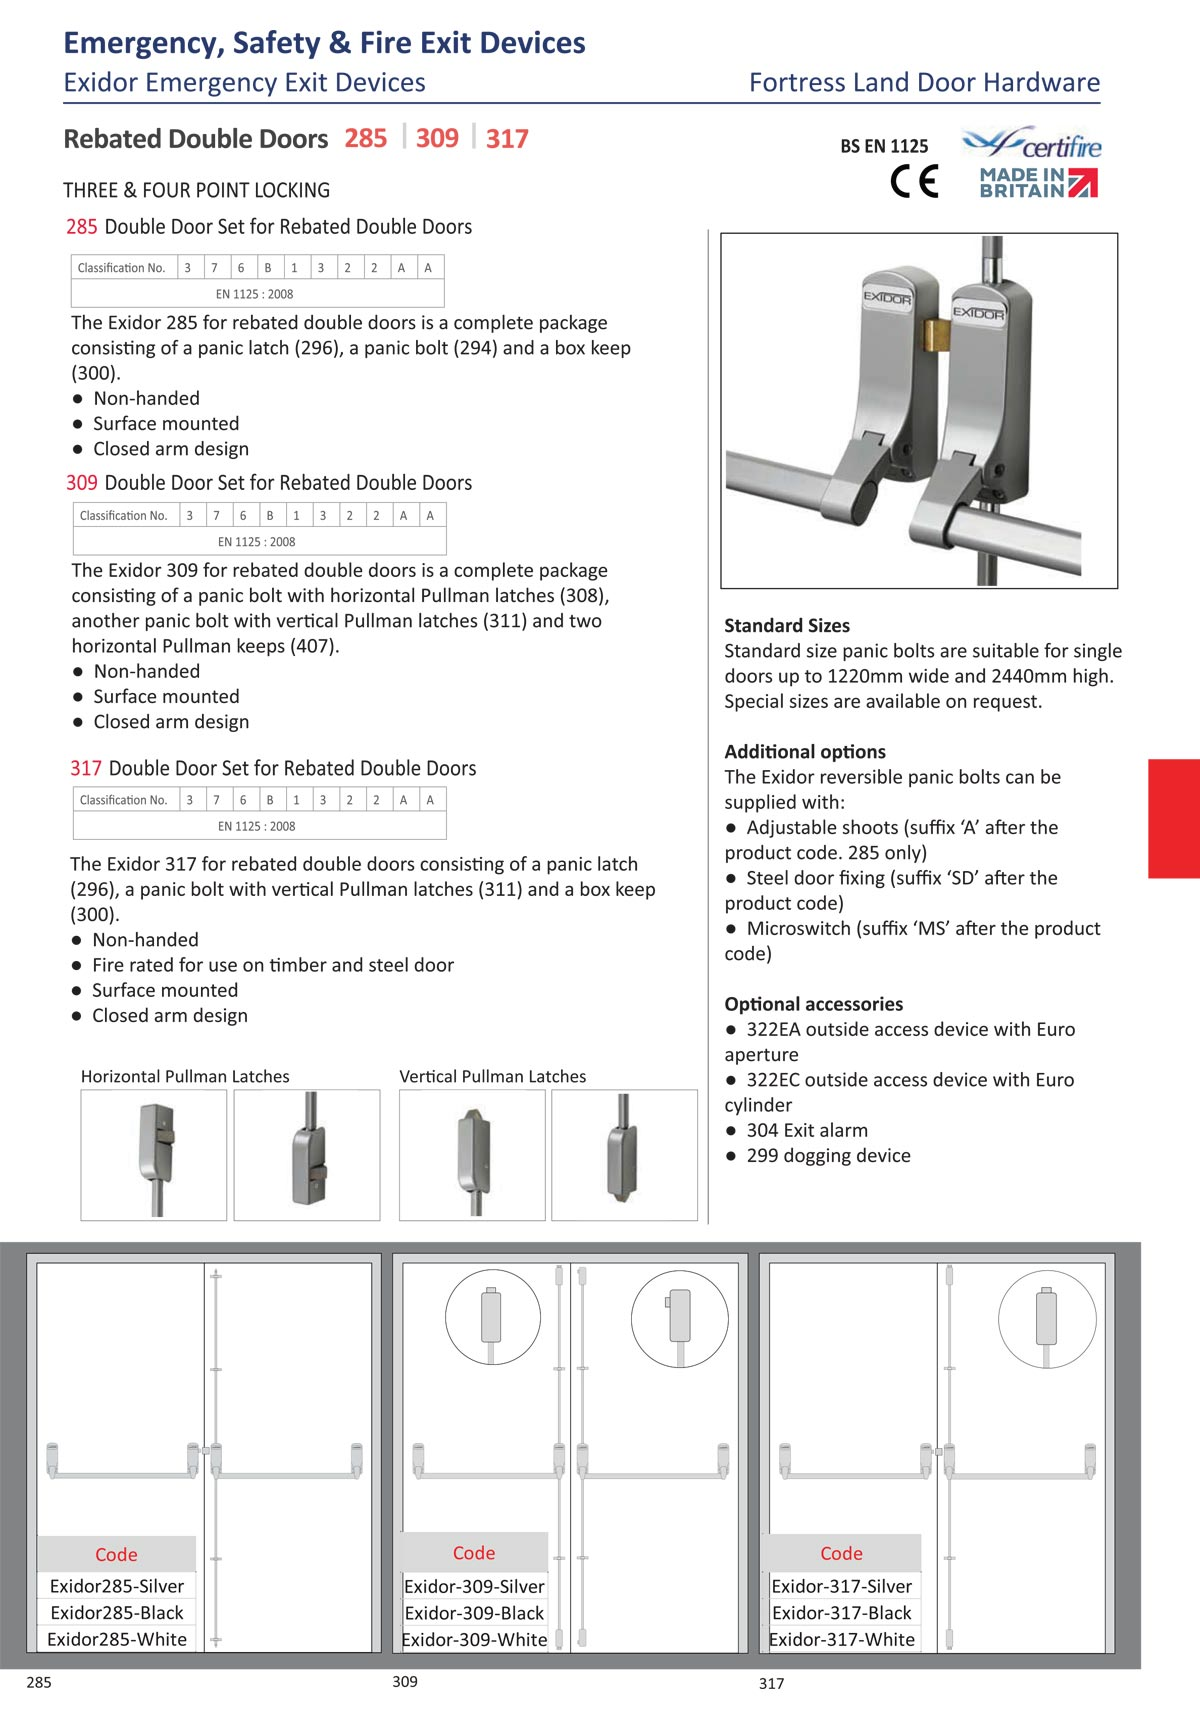 double door emergency exit device, Panic Exit Device, emergency exit device, exidor emergency exit, double door fire exit, fire rated exit device, vertical rod exit device, Fortress Land Security Company Yangon, Myanmar